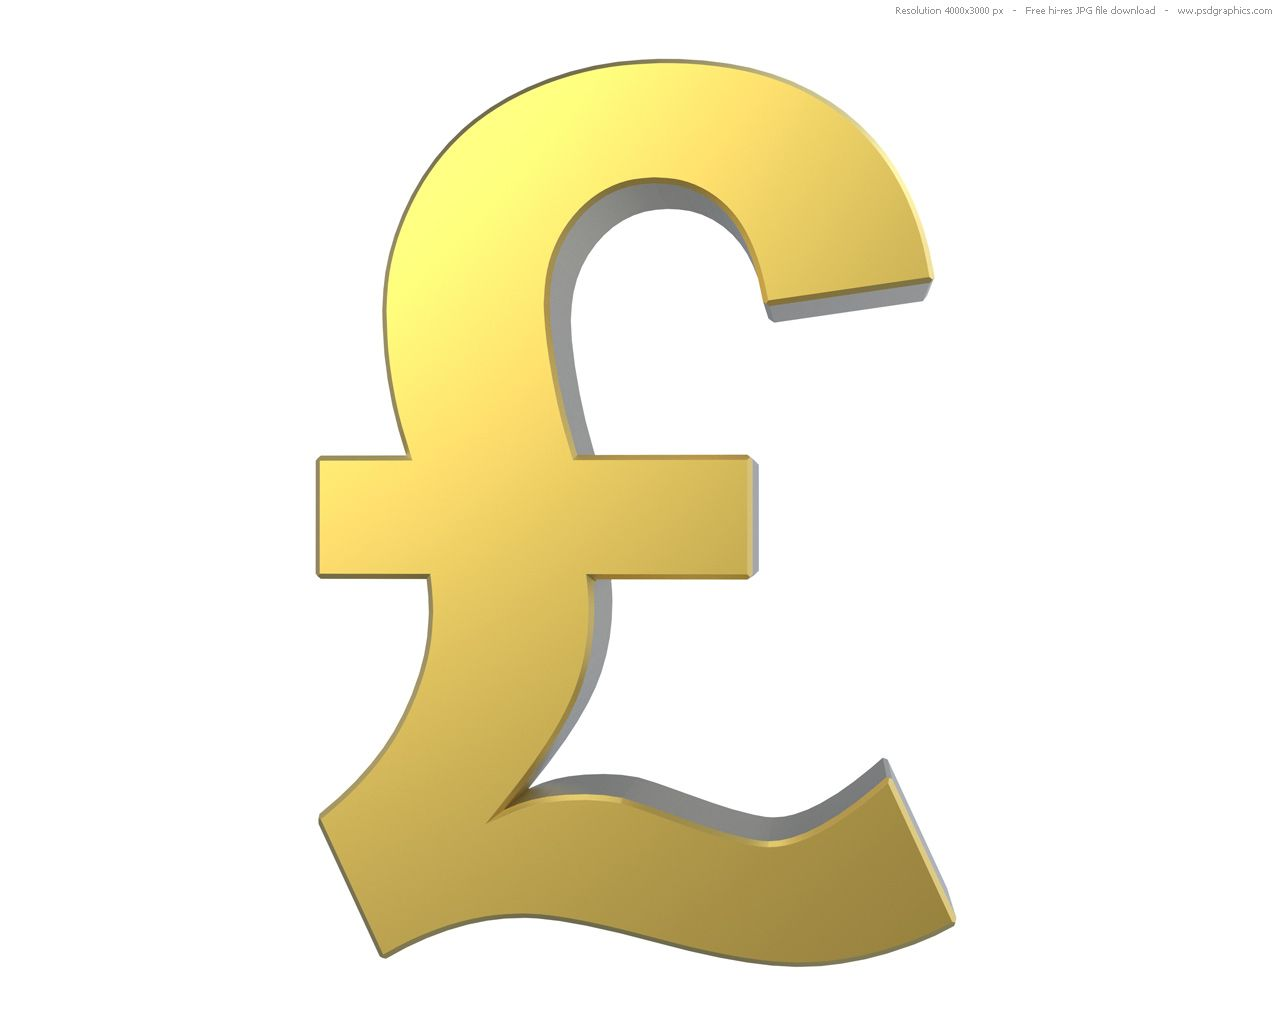 Pound symbol name image collections symbol and sign ideas pound sign google search law of attraction pinterest pound sign google search buycottarizona biocorpaavc